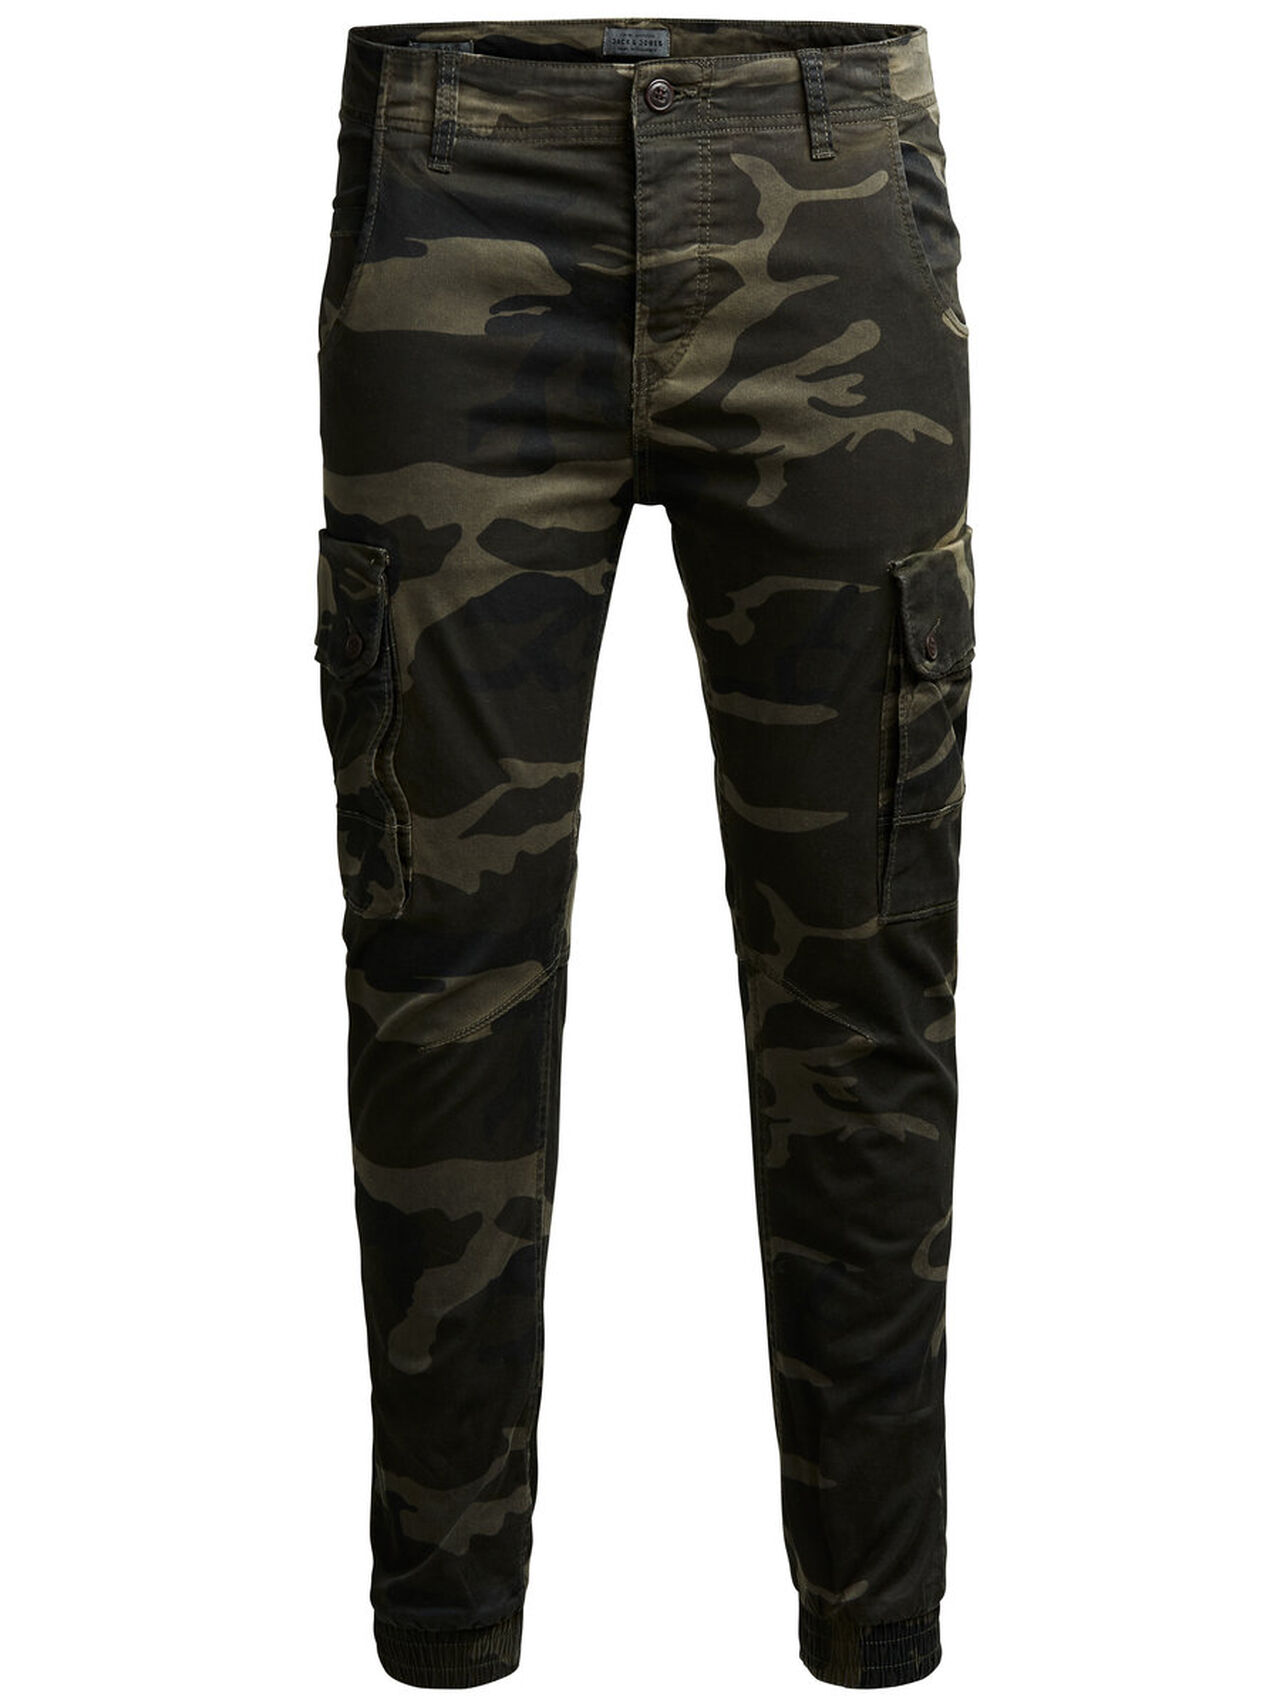 JACK & JONES Army Cargo Pants Men Green